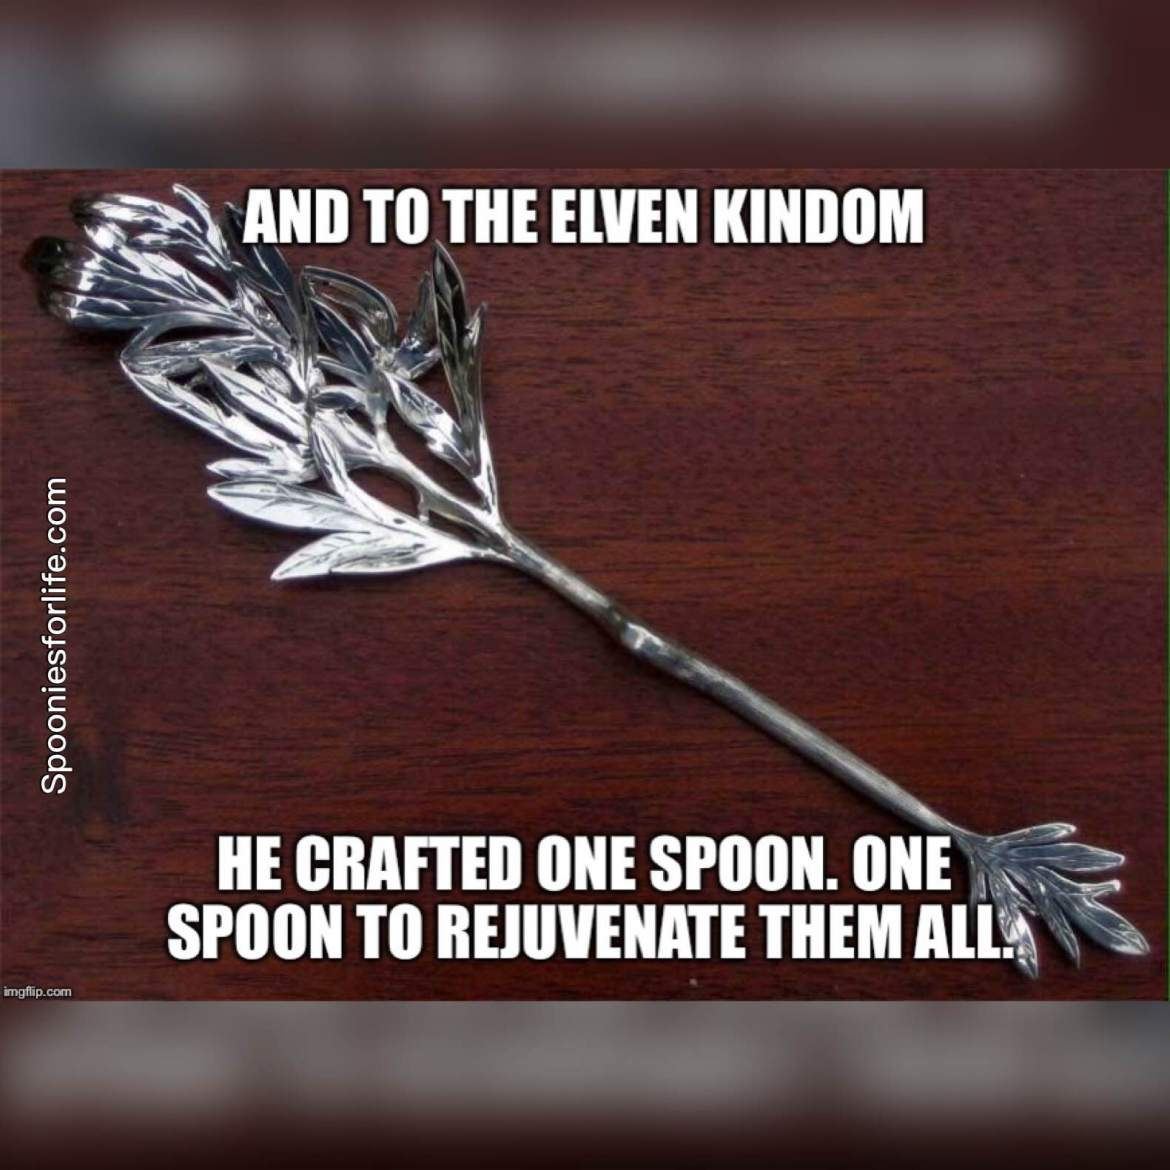 one spoon to rejuventate